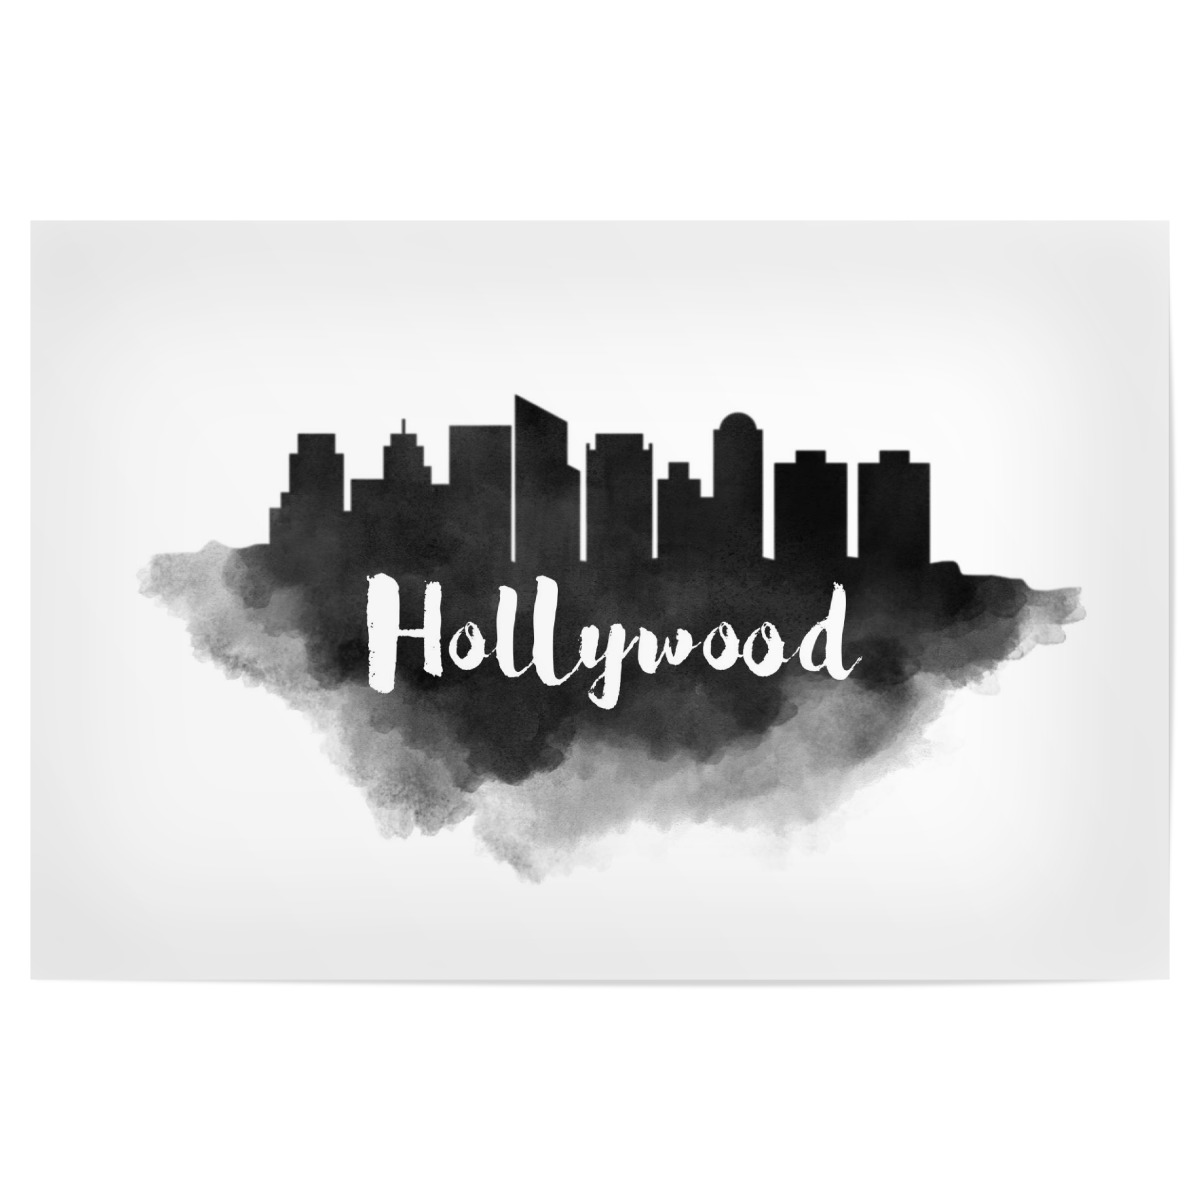 Watercolor Hollywood Skyline als Poster bei artboxONE kaufen